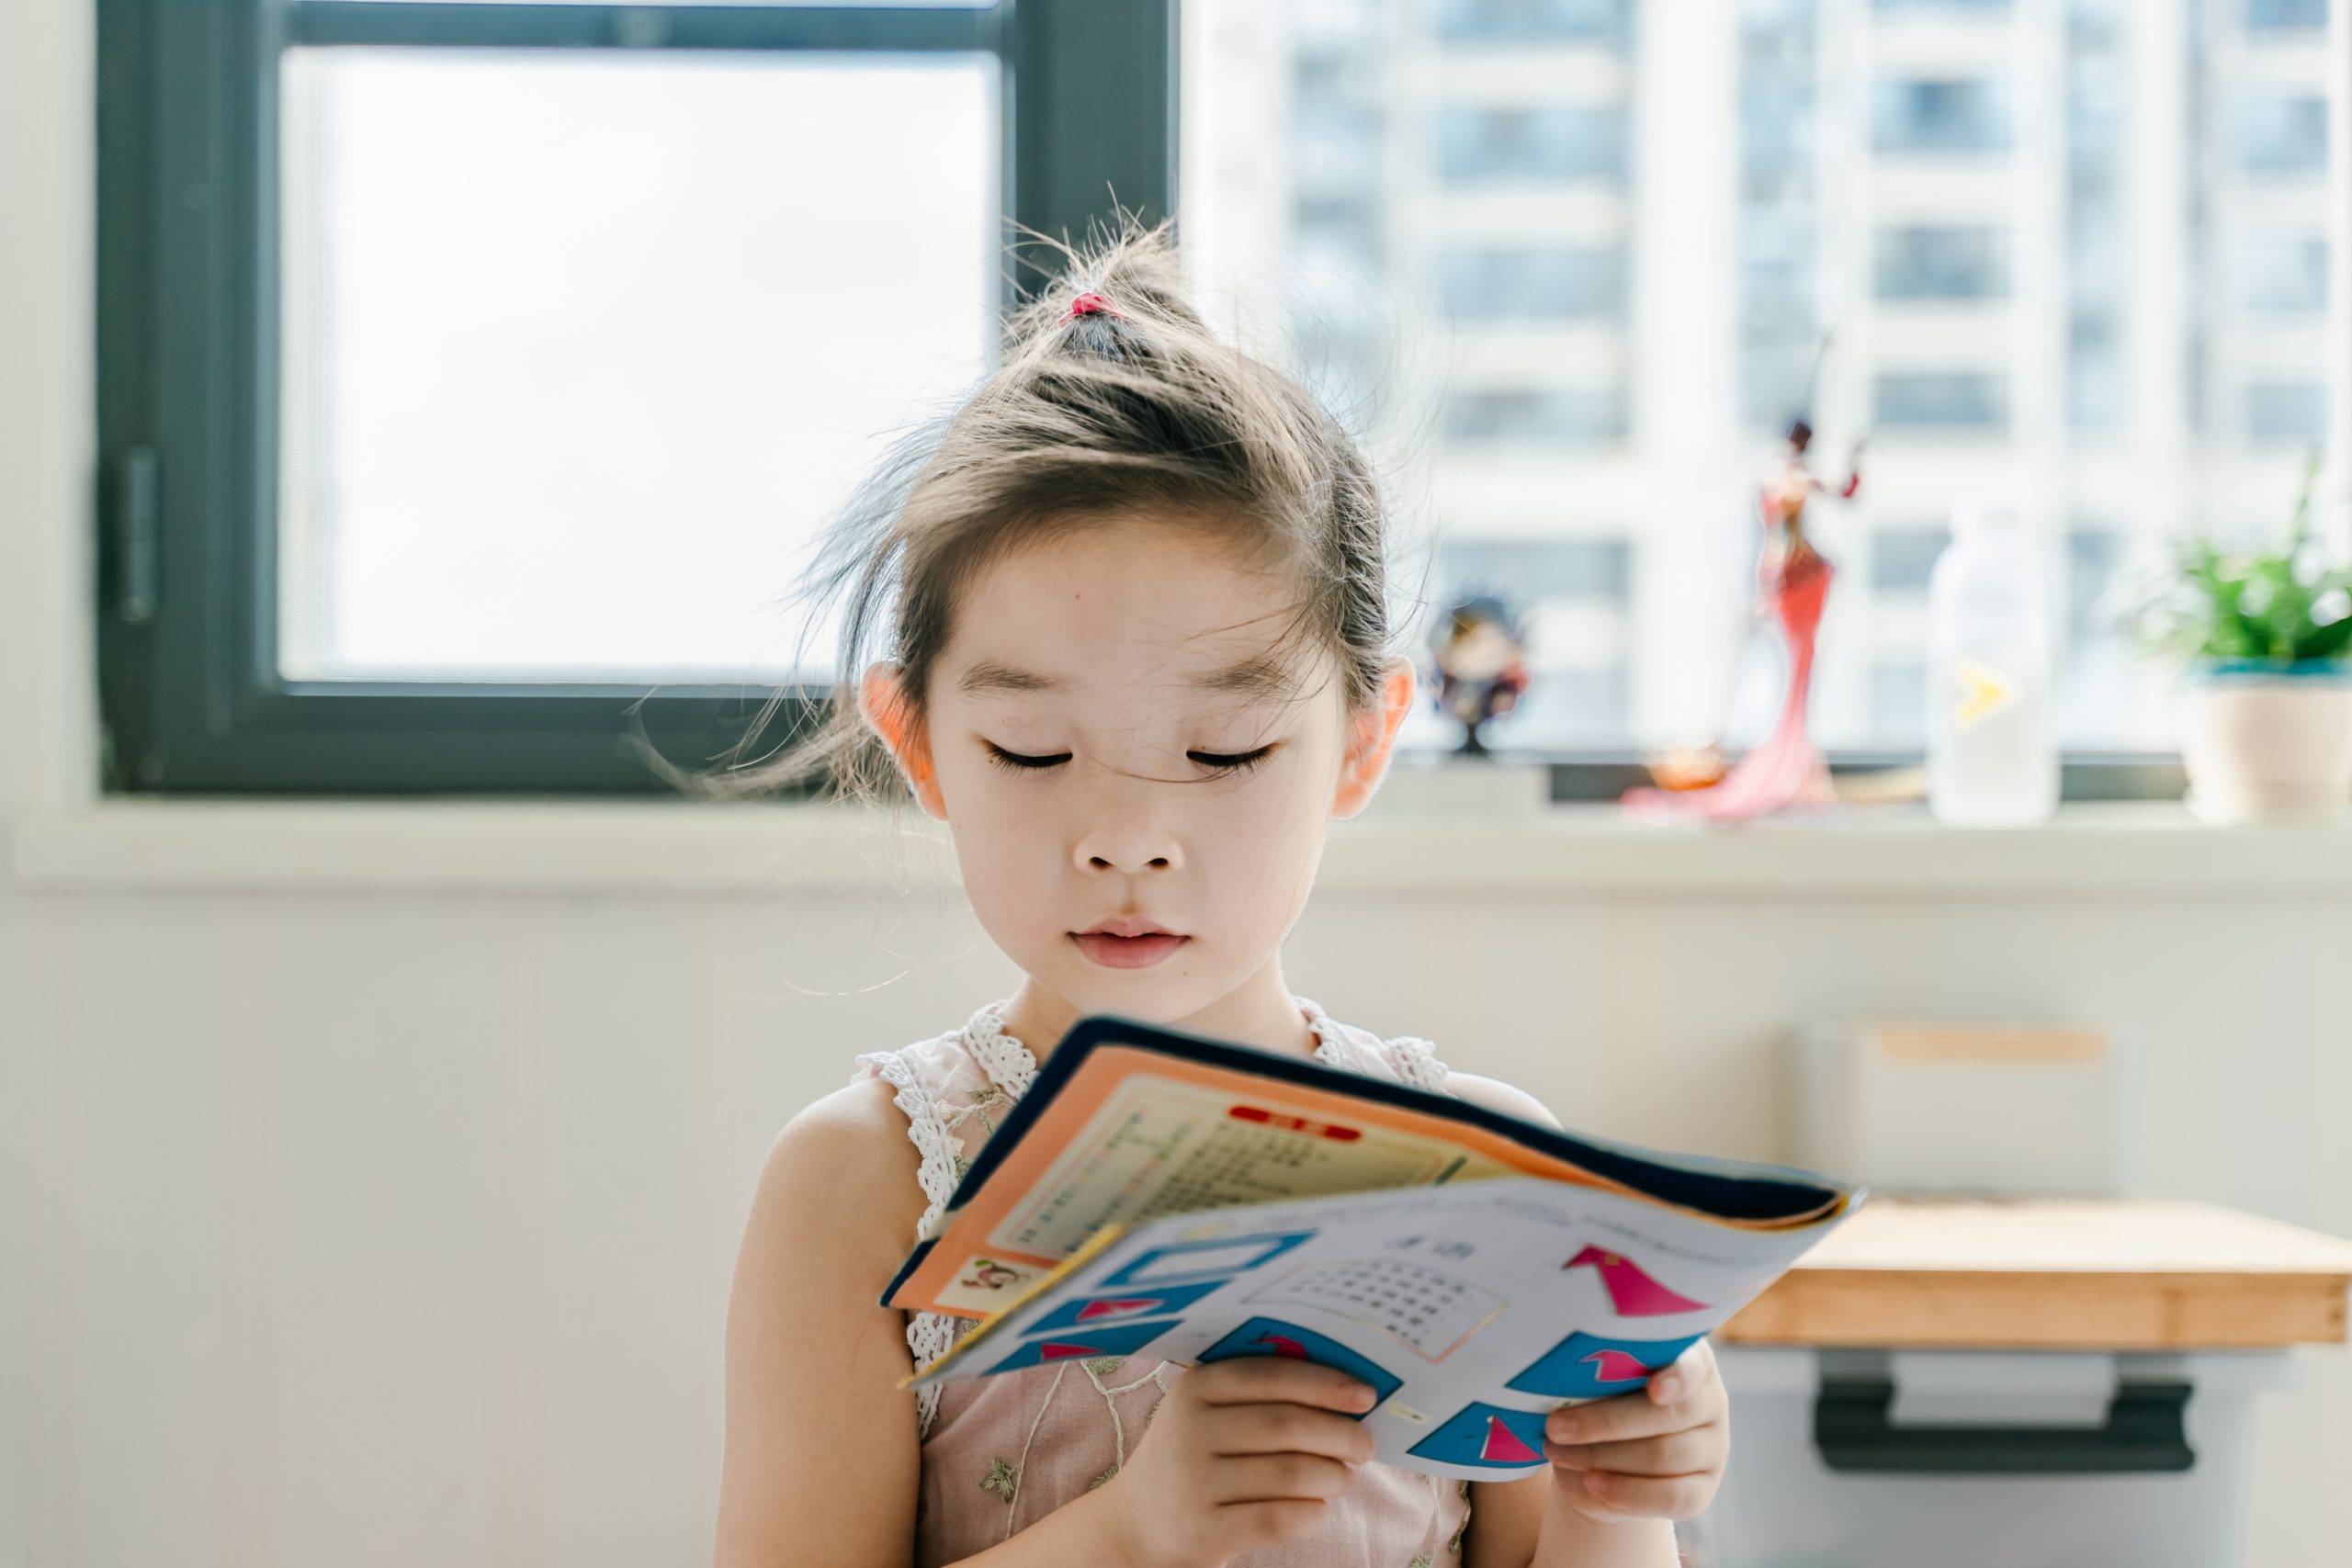 Young girl reading something